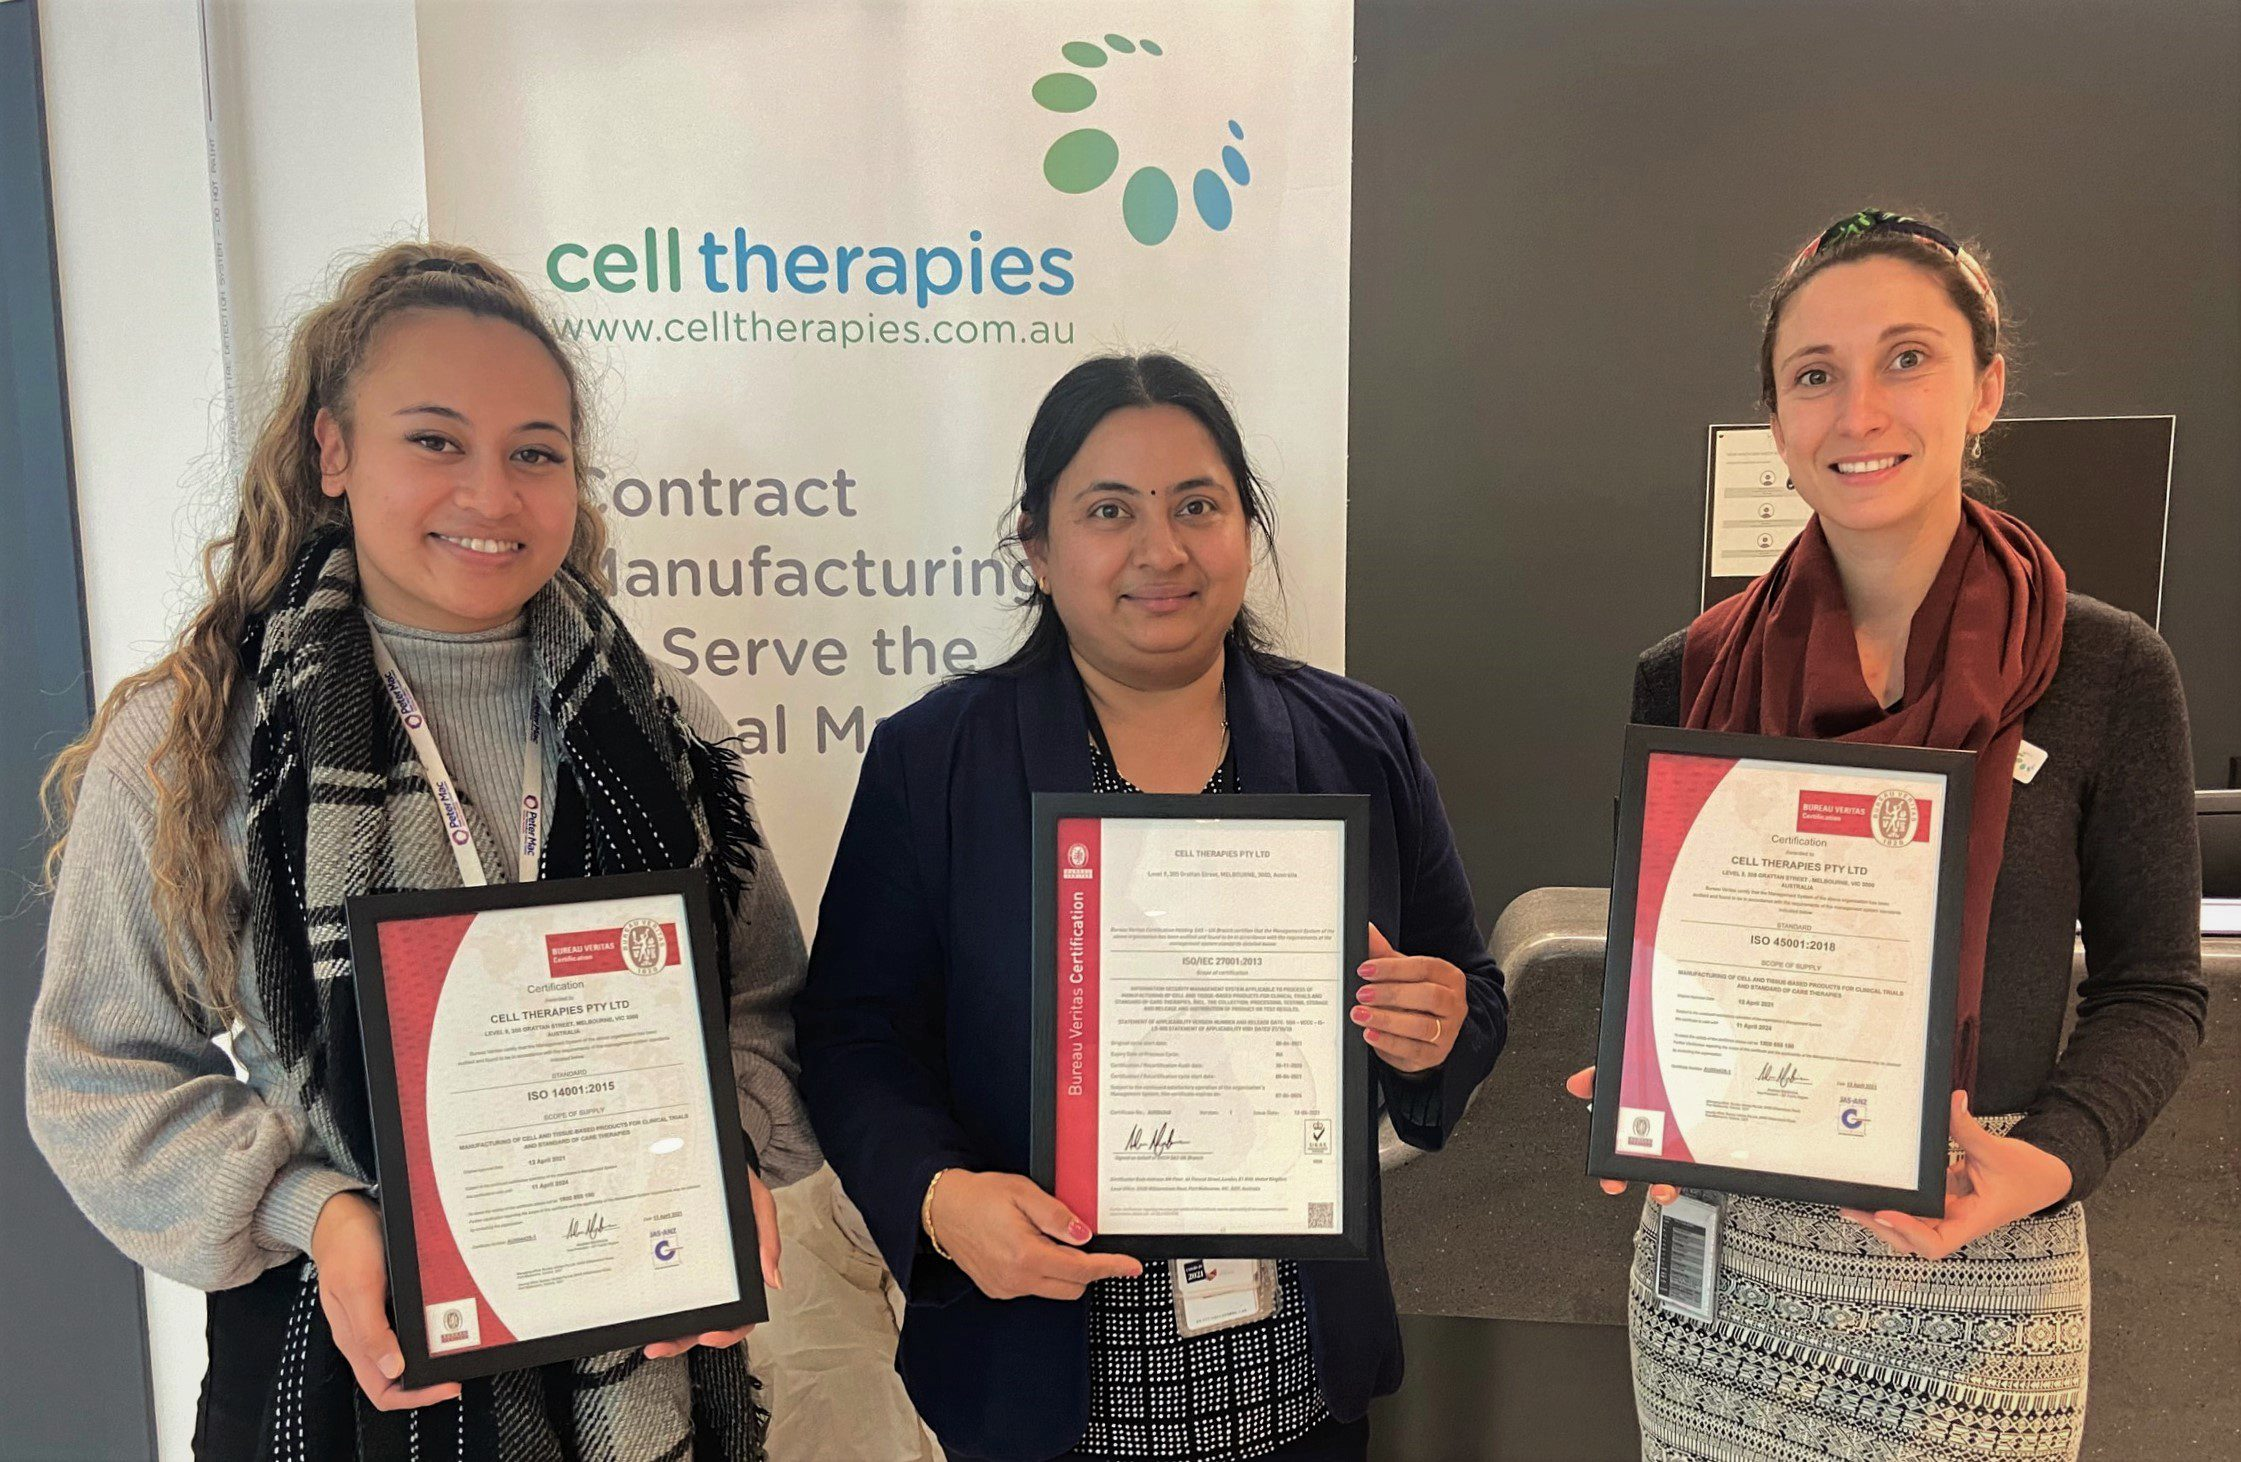 ISO certifications accredited to Cell Therapies Pty Ltd management systems